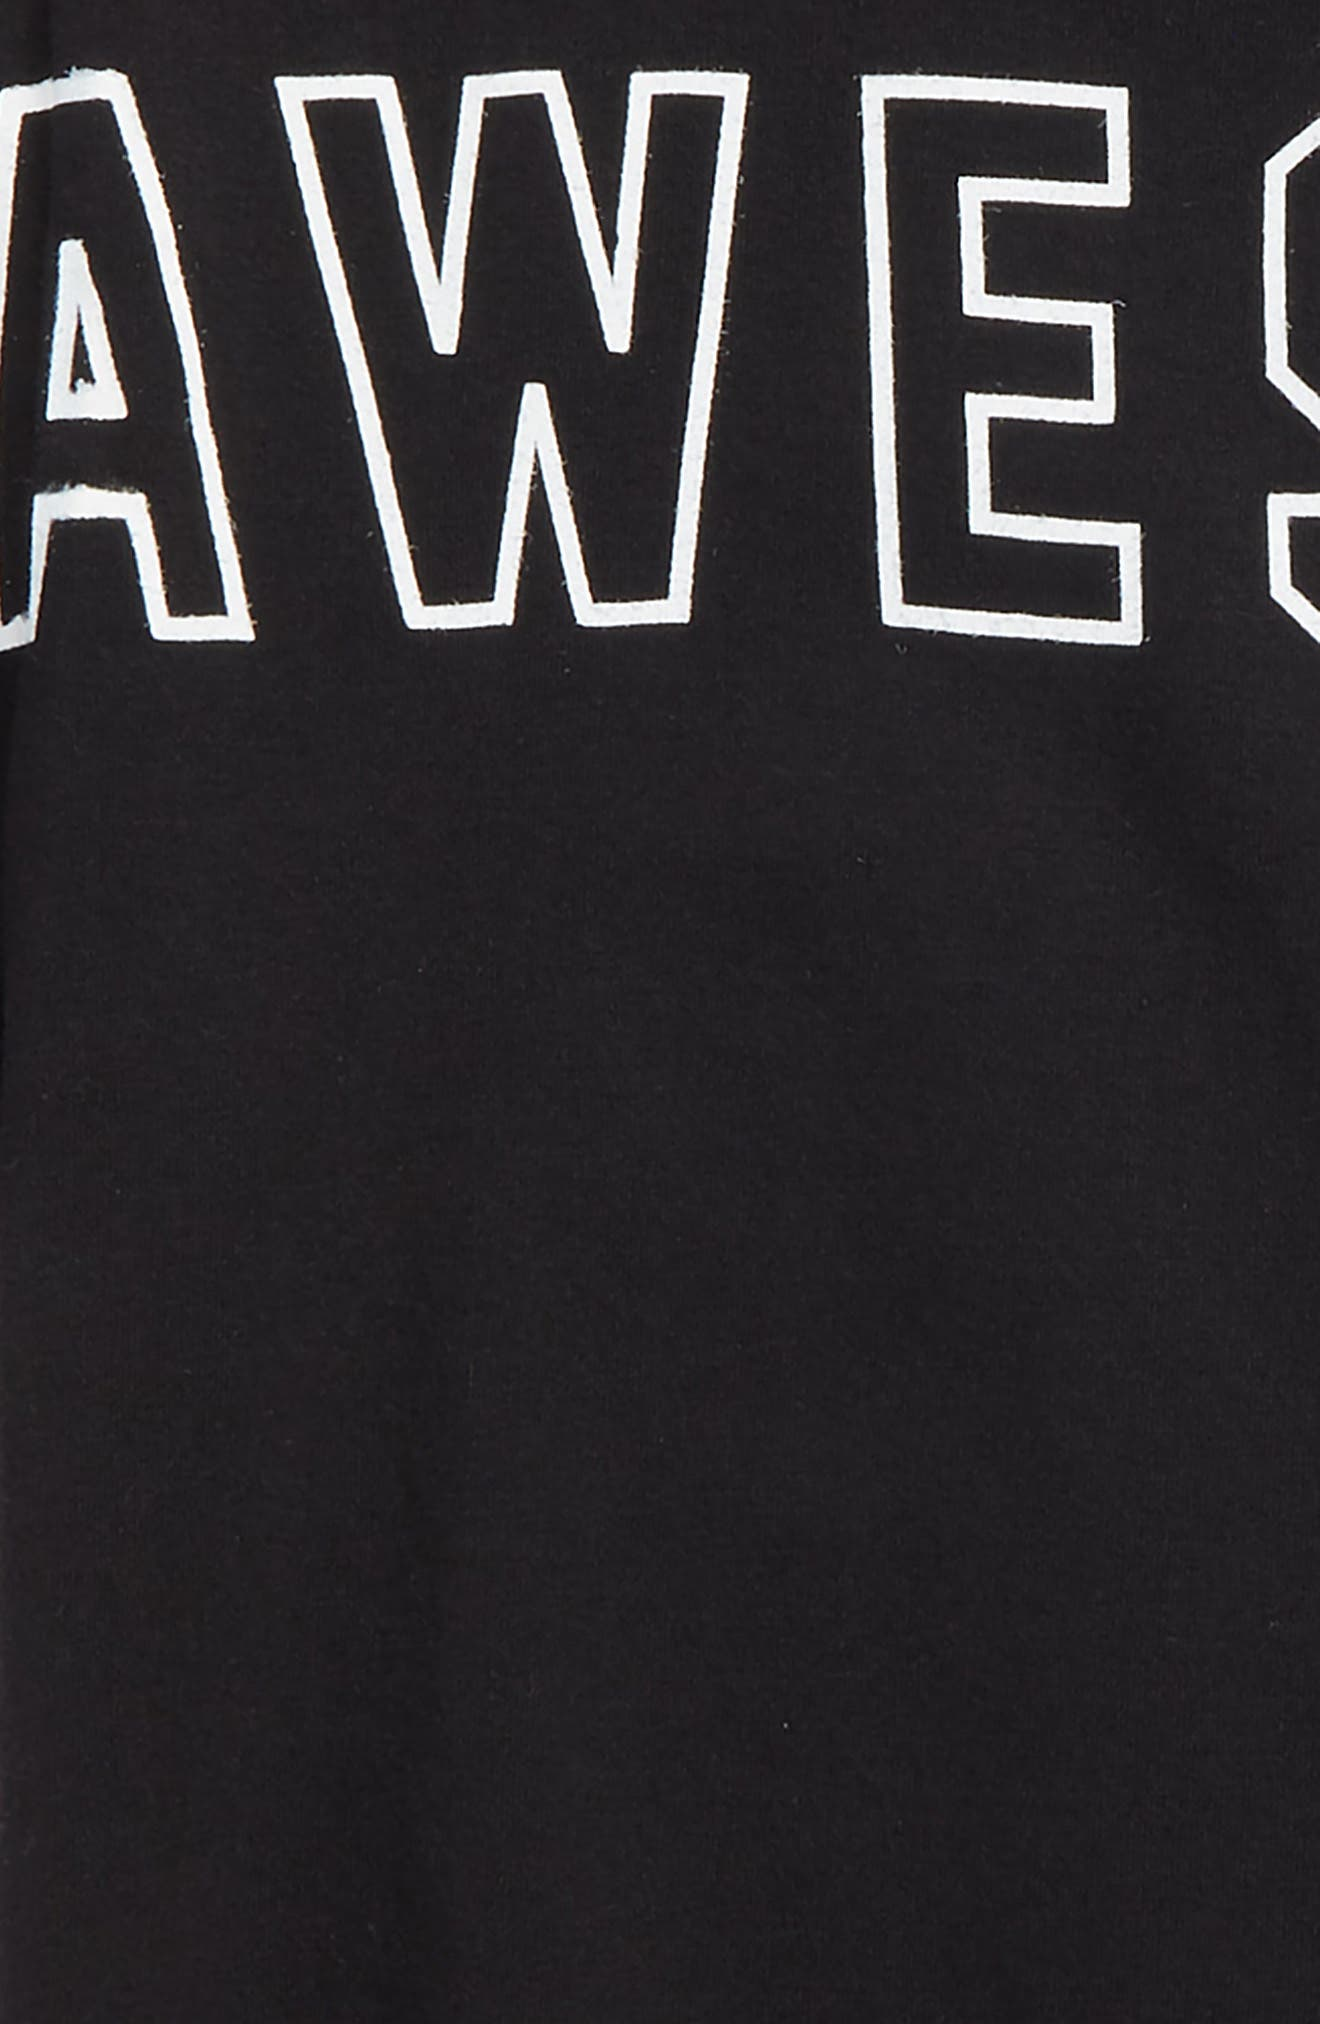 Awesome Graphic Organic Cotton T-Shirt,                             Alternate thumbnail 2, color,                             Black